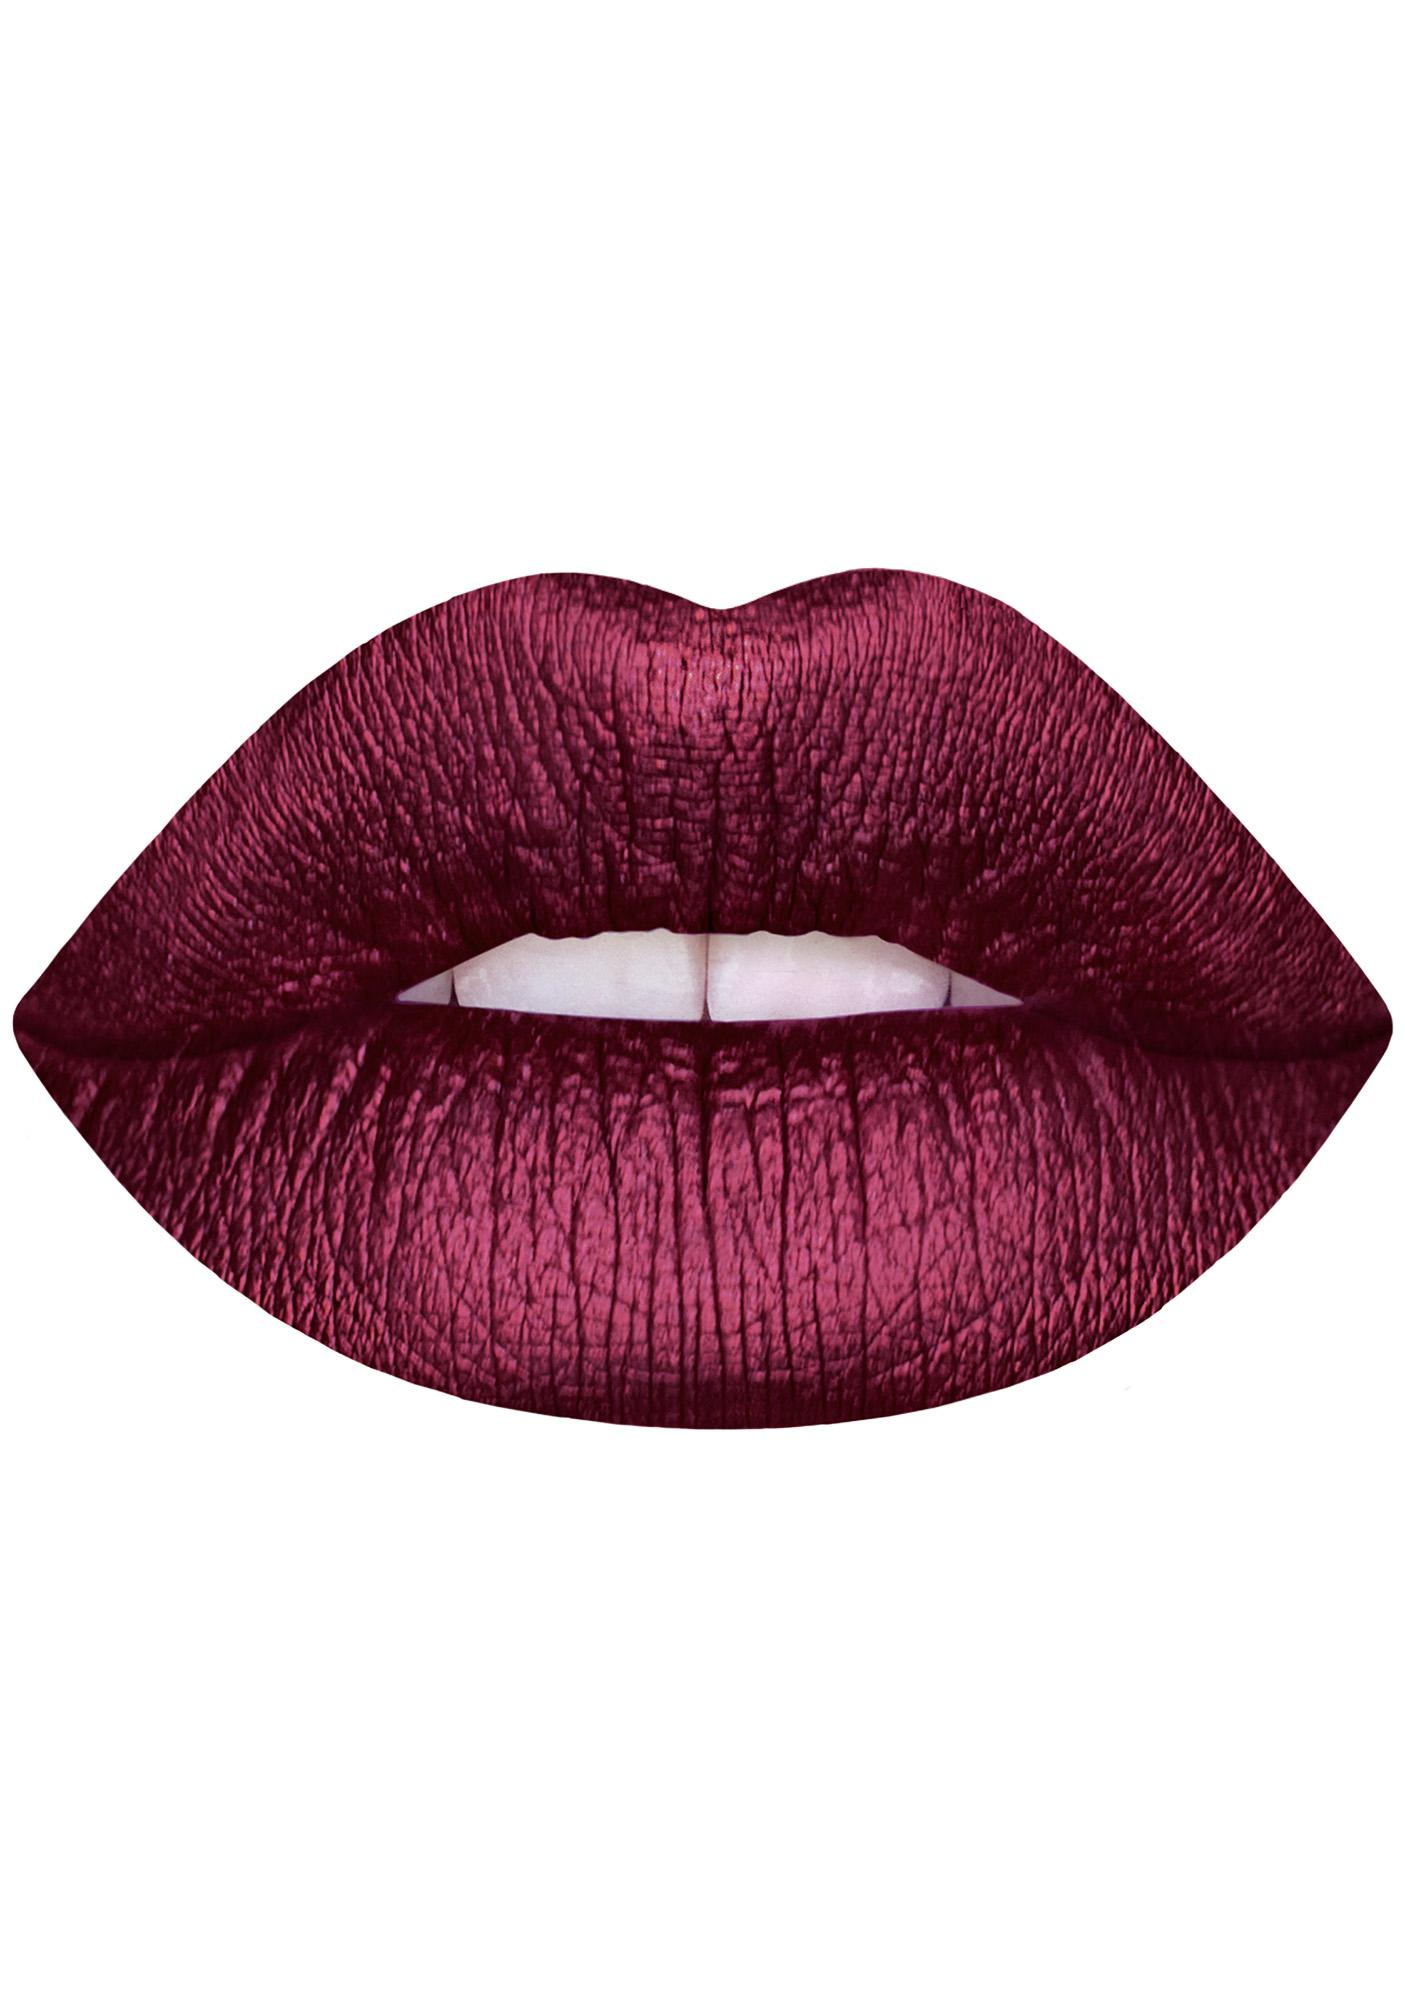 Lime Crime Raisin Hell Metallic Velvetine Liquid Lipstick